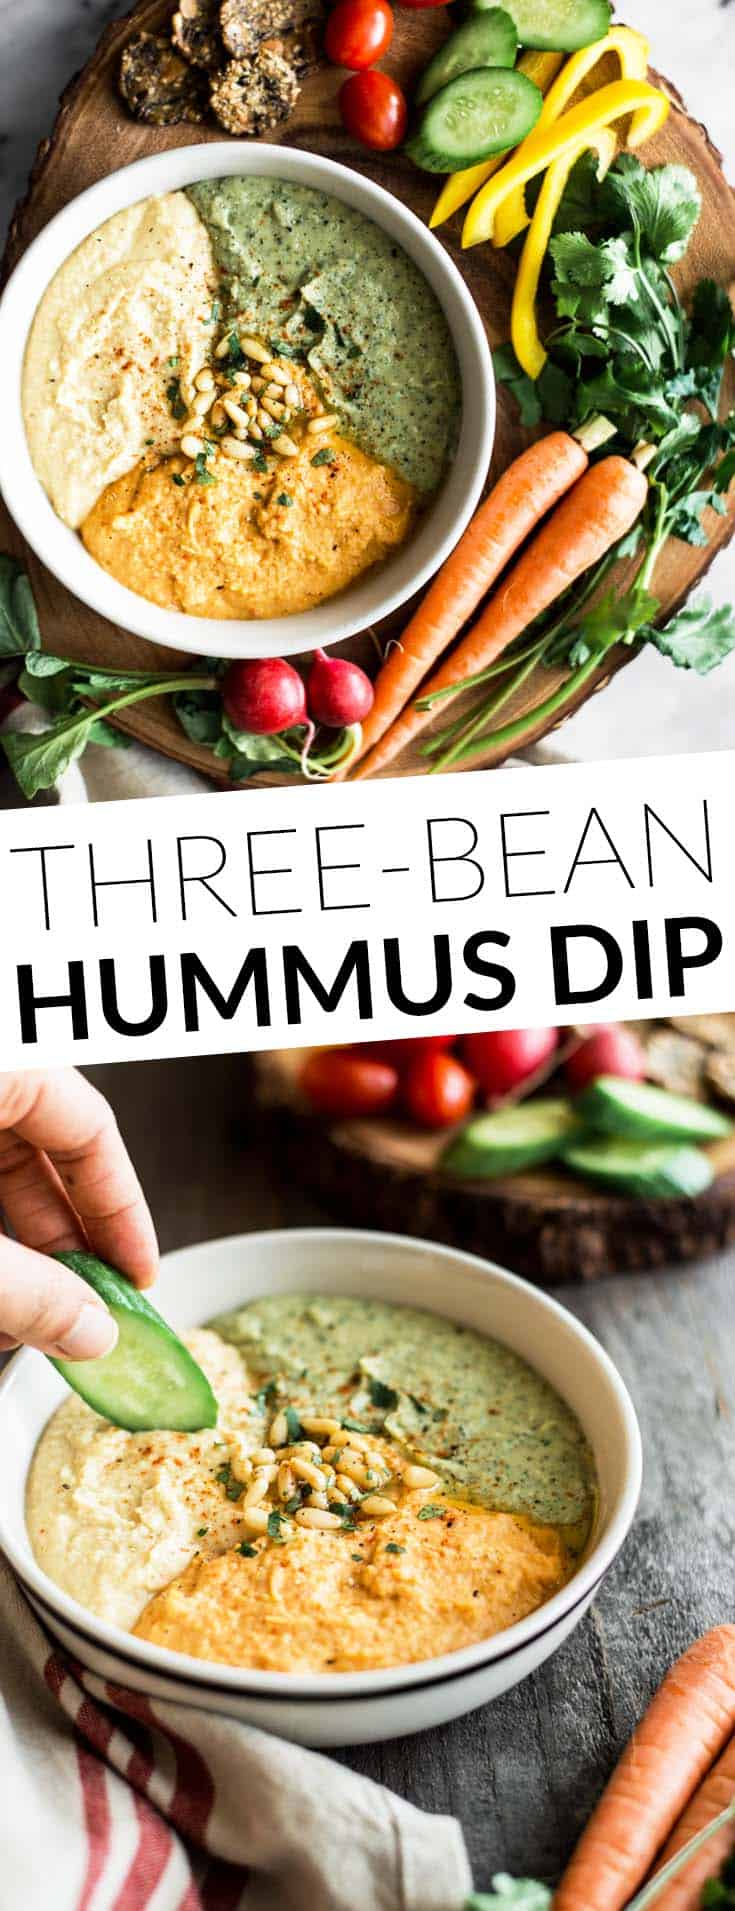 Perfect Hummus Three Ways - Roasted Garlic Hummus, Carrot Harissa Hummus, and Cilantro Jalapeno Hummus - it's a great protein-packed dip for pre- and post-workout! by @healthynibs